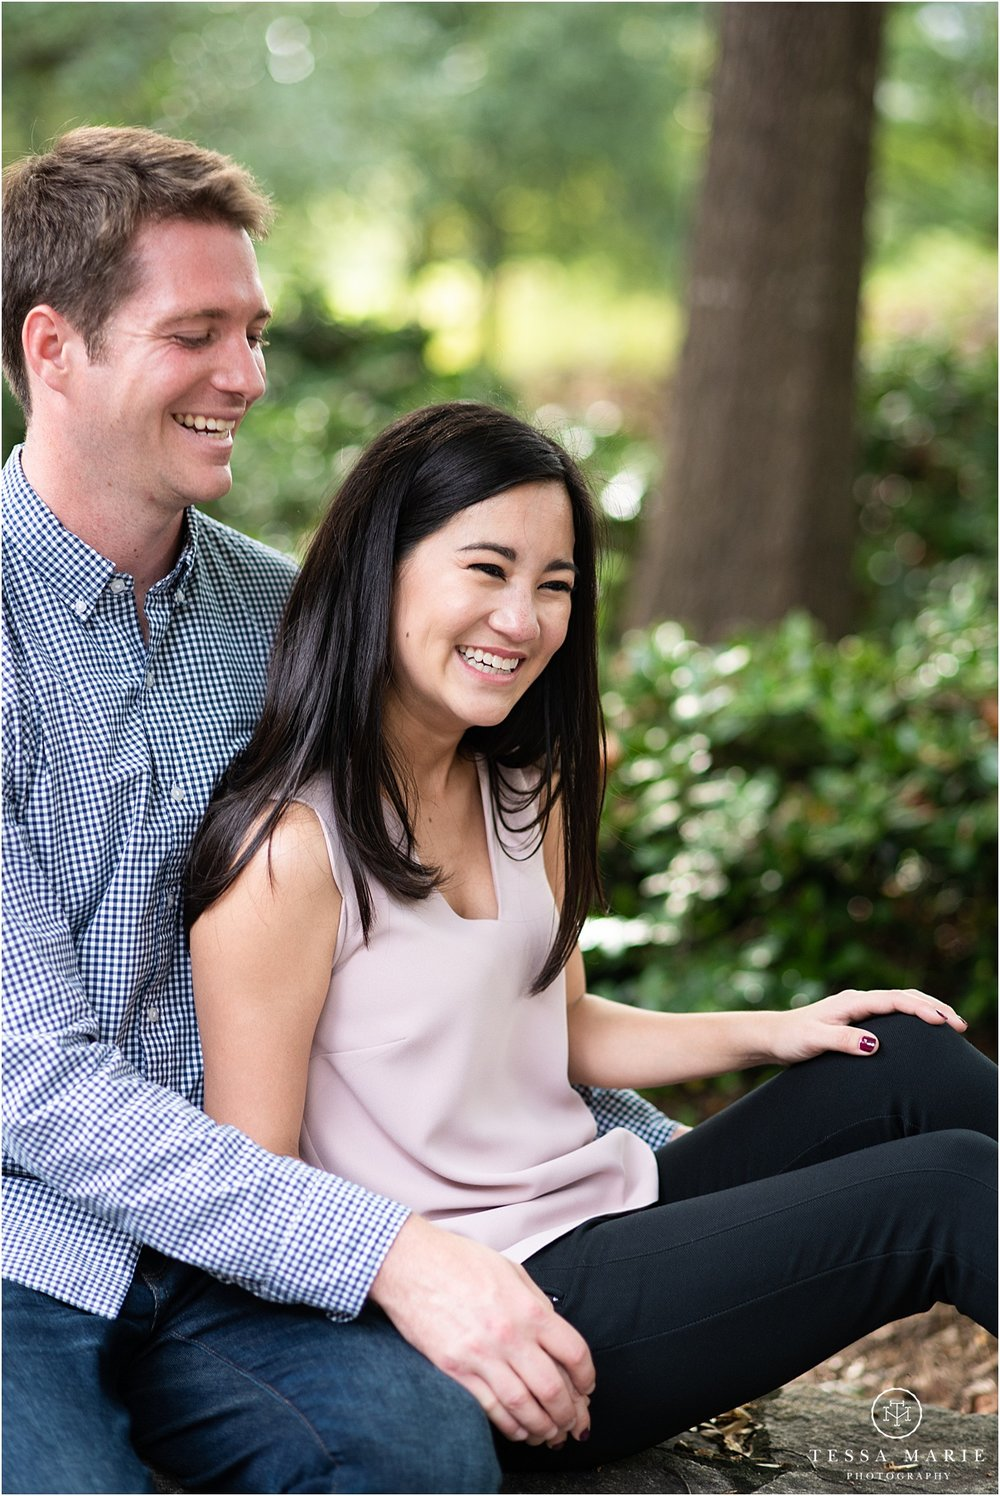 Tessa_marie_photography_wedding_photographer_engagement_pictures_piedmont_park_0015.jpg